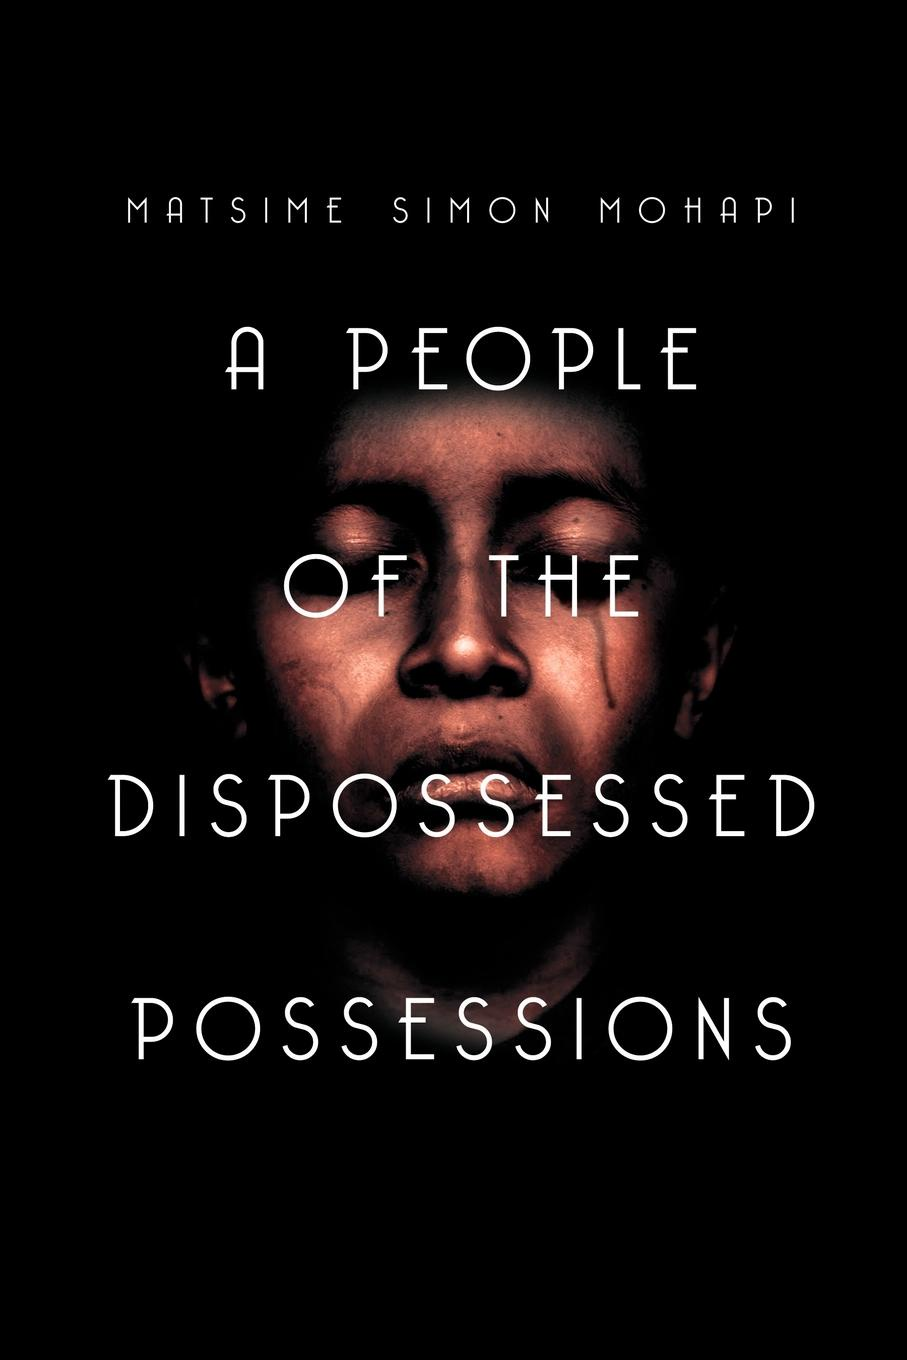 Matsime Simon Mohapi A People of the Dispossessed Possessions. S O U T H A F R I C a цены